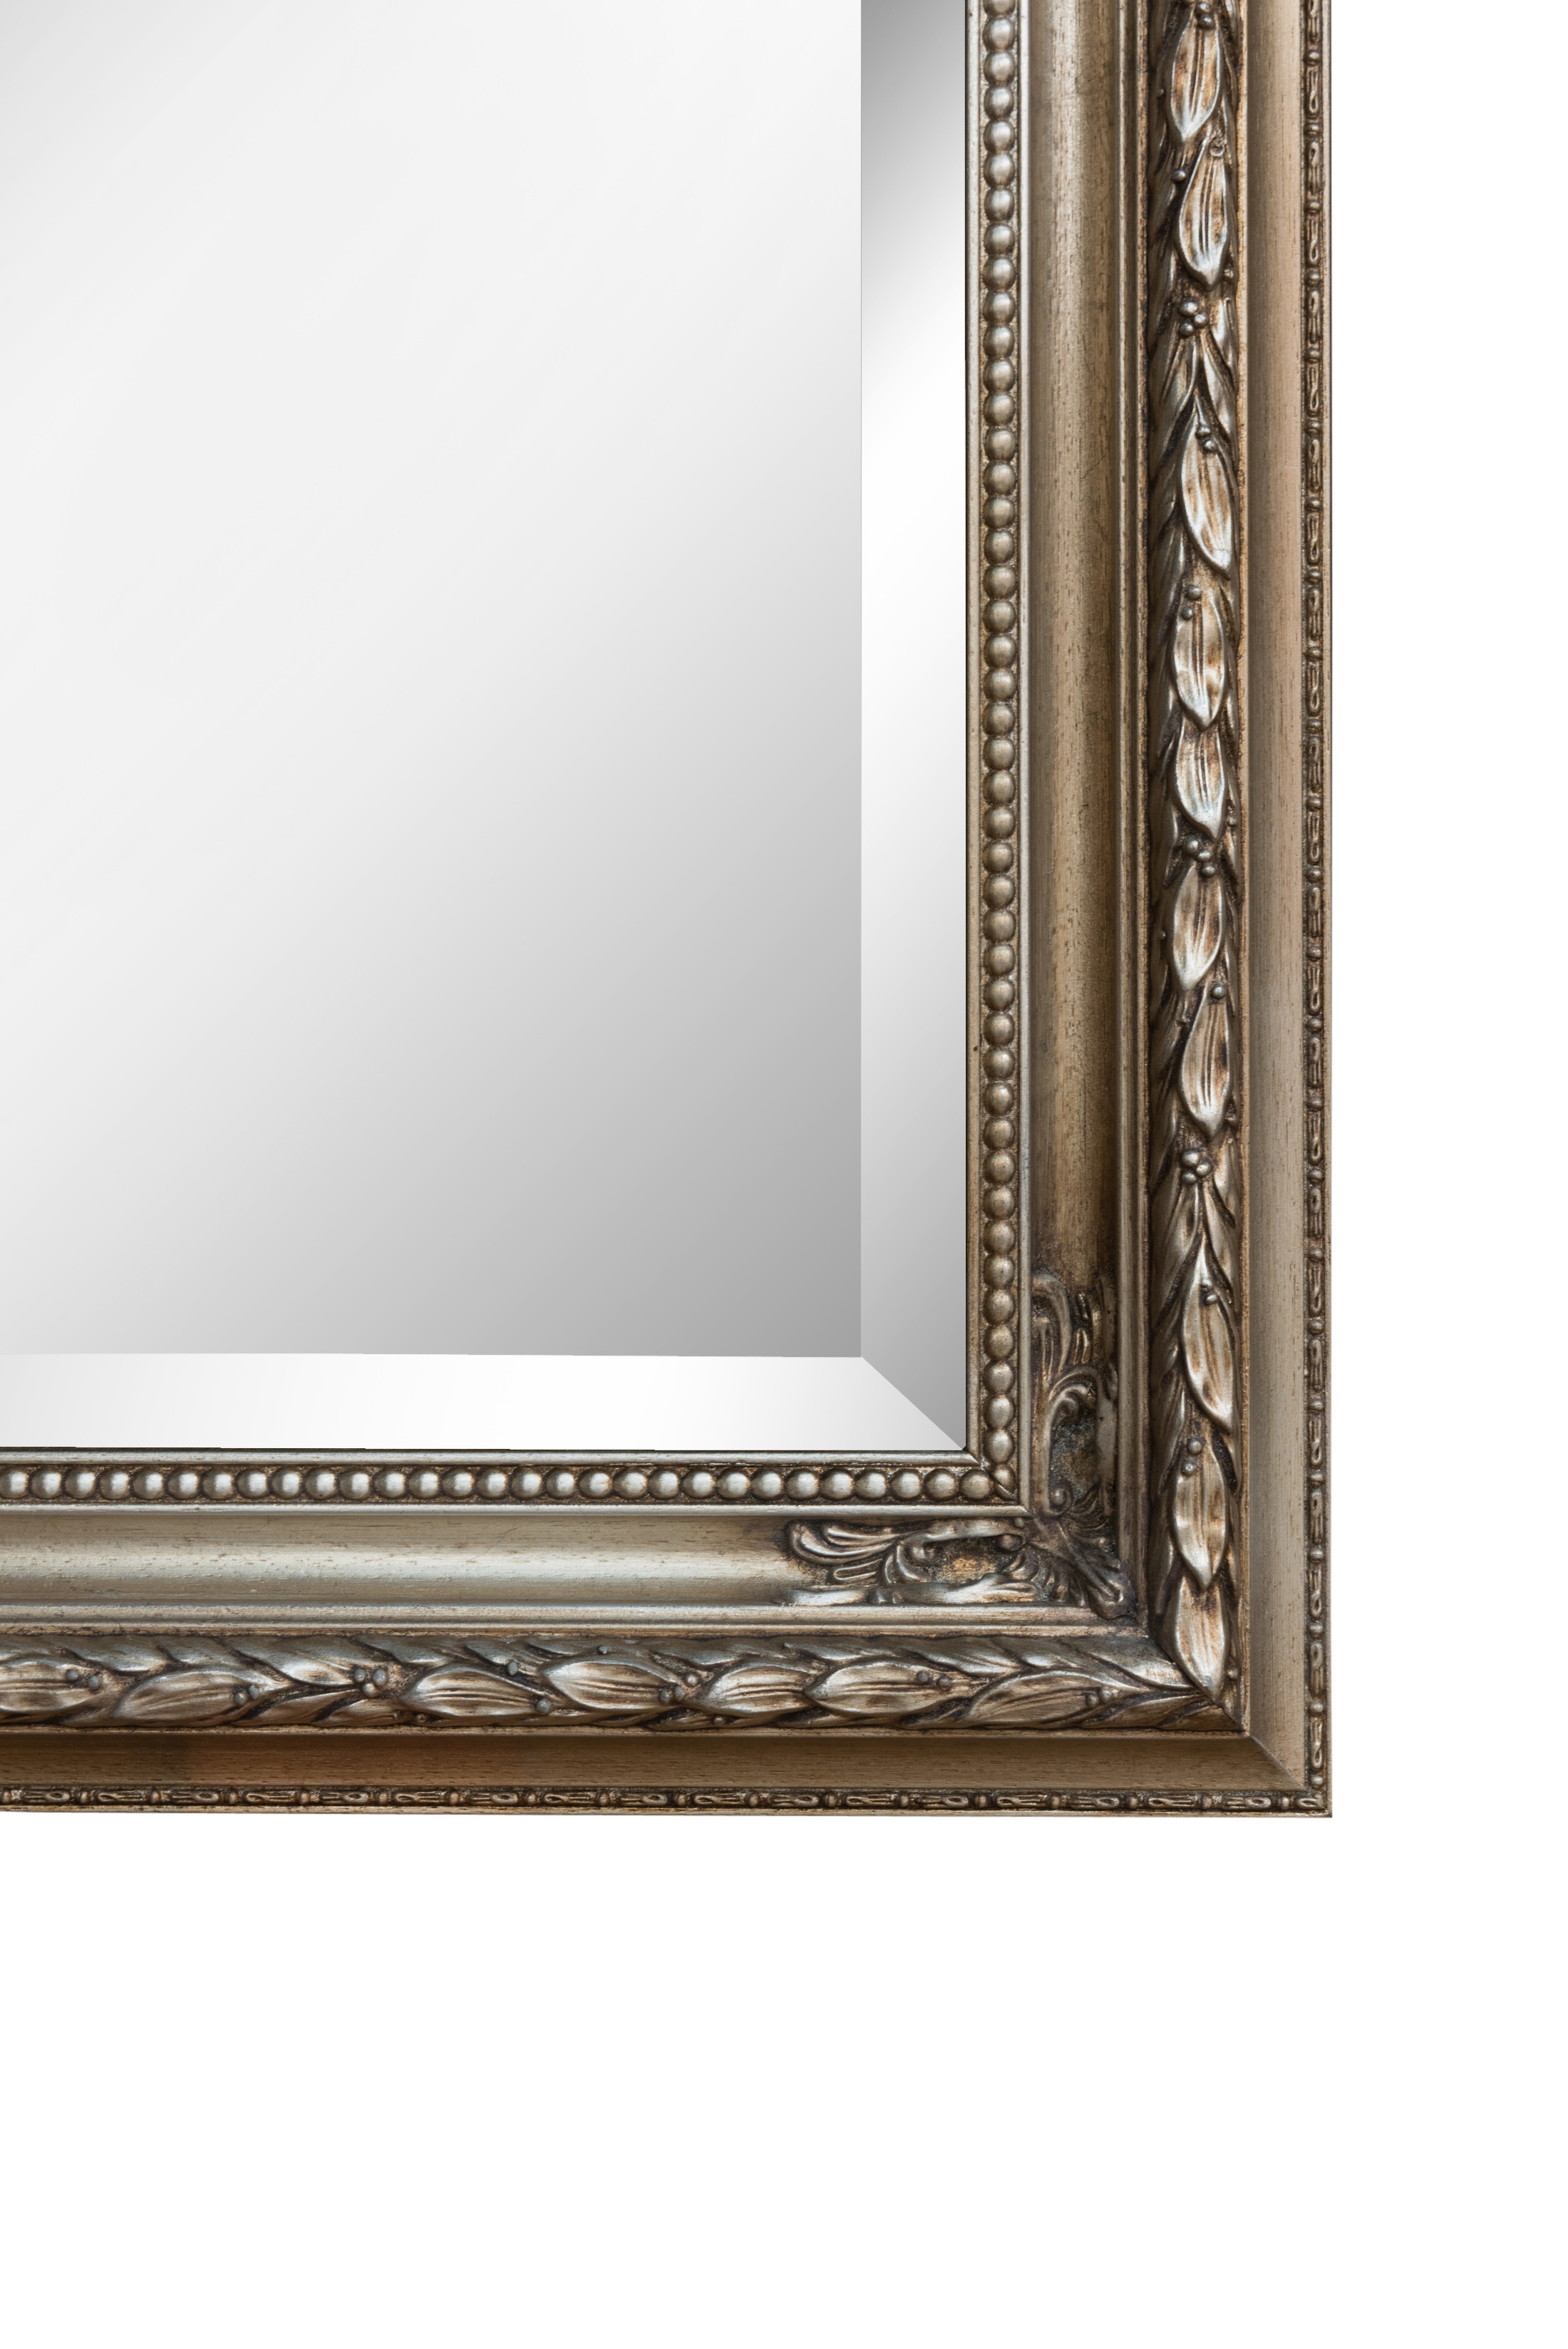 Silver Baroque Mirror Large Mirrors For Sale Panfili Mirrors In Silver Baroque Mirror (Image 12 of 15)